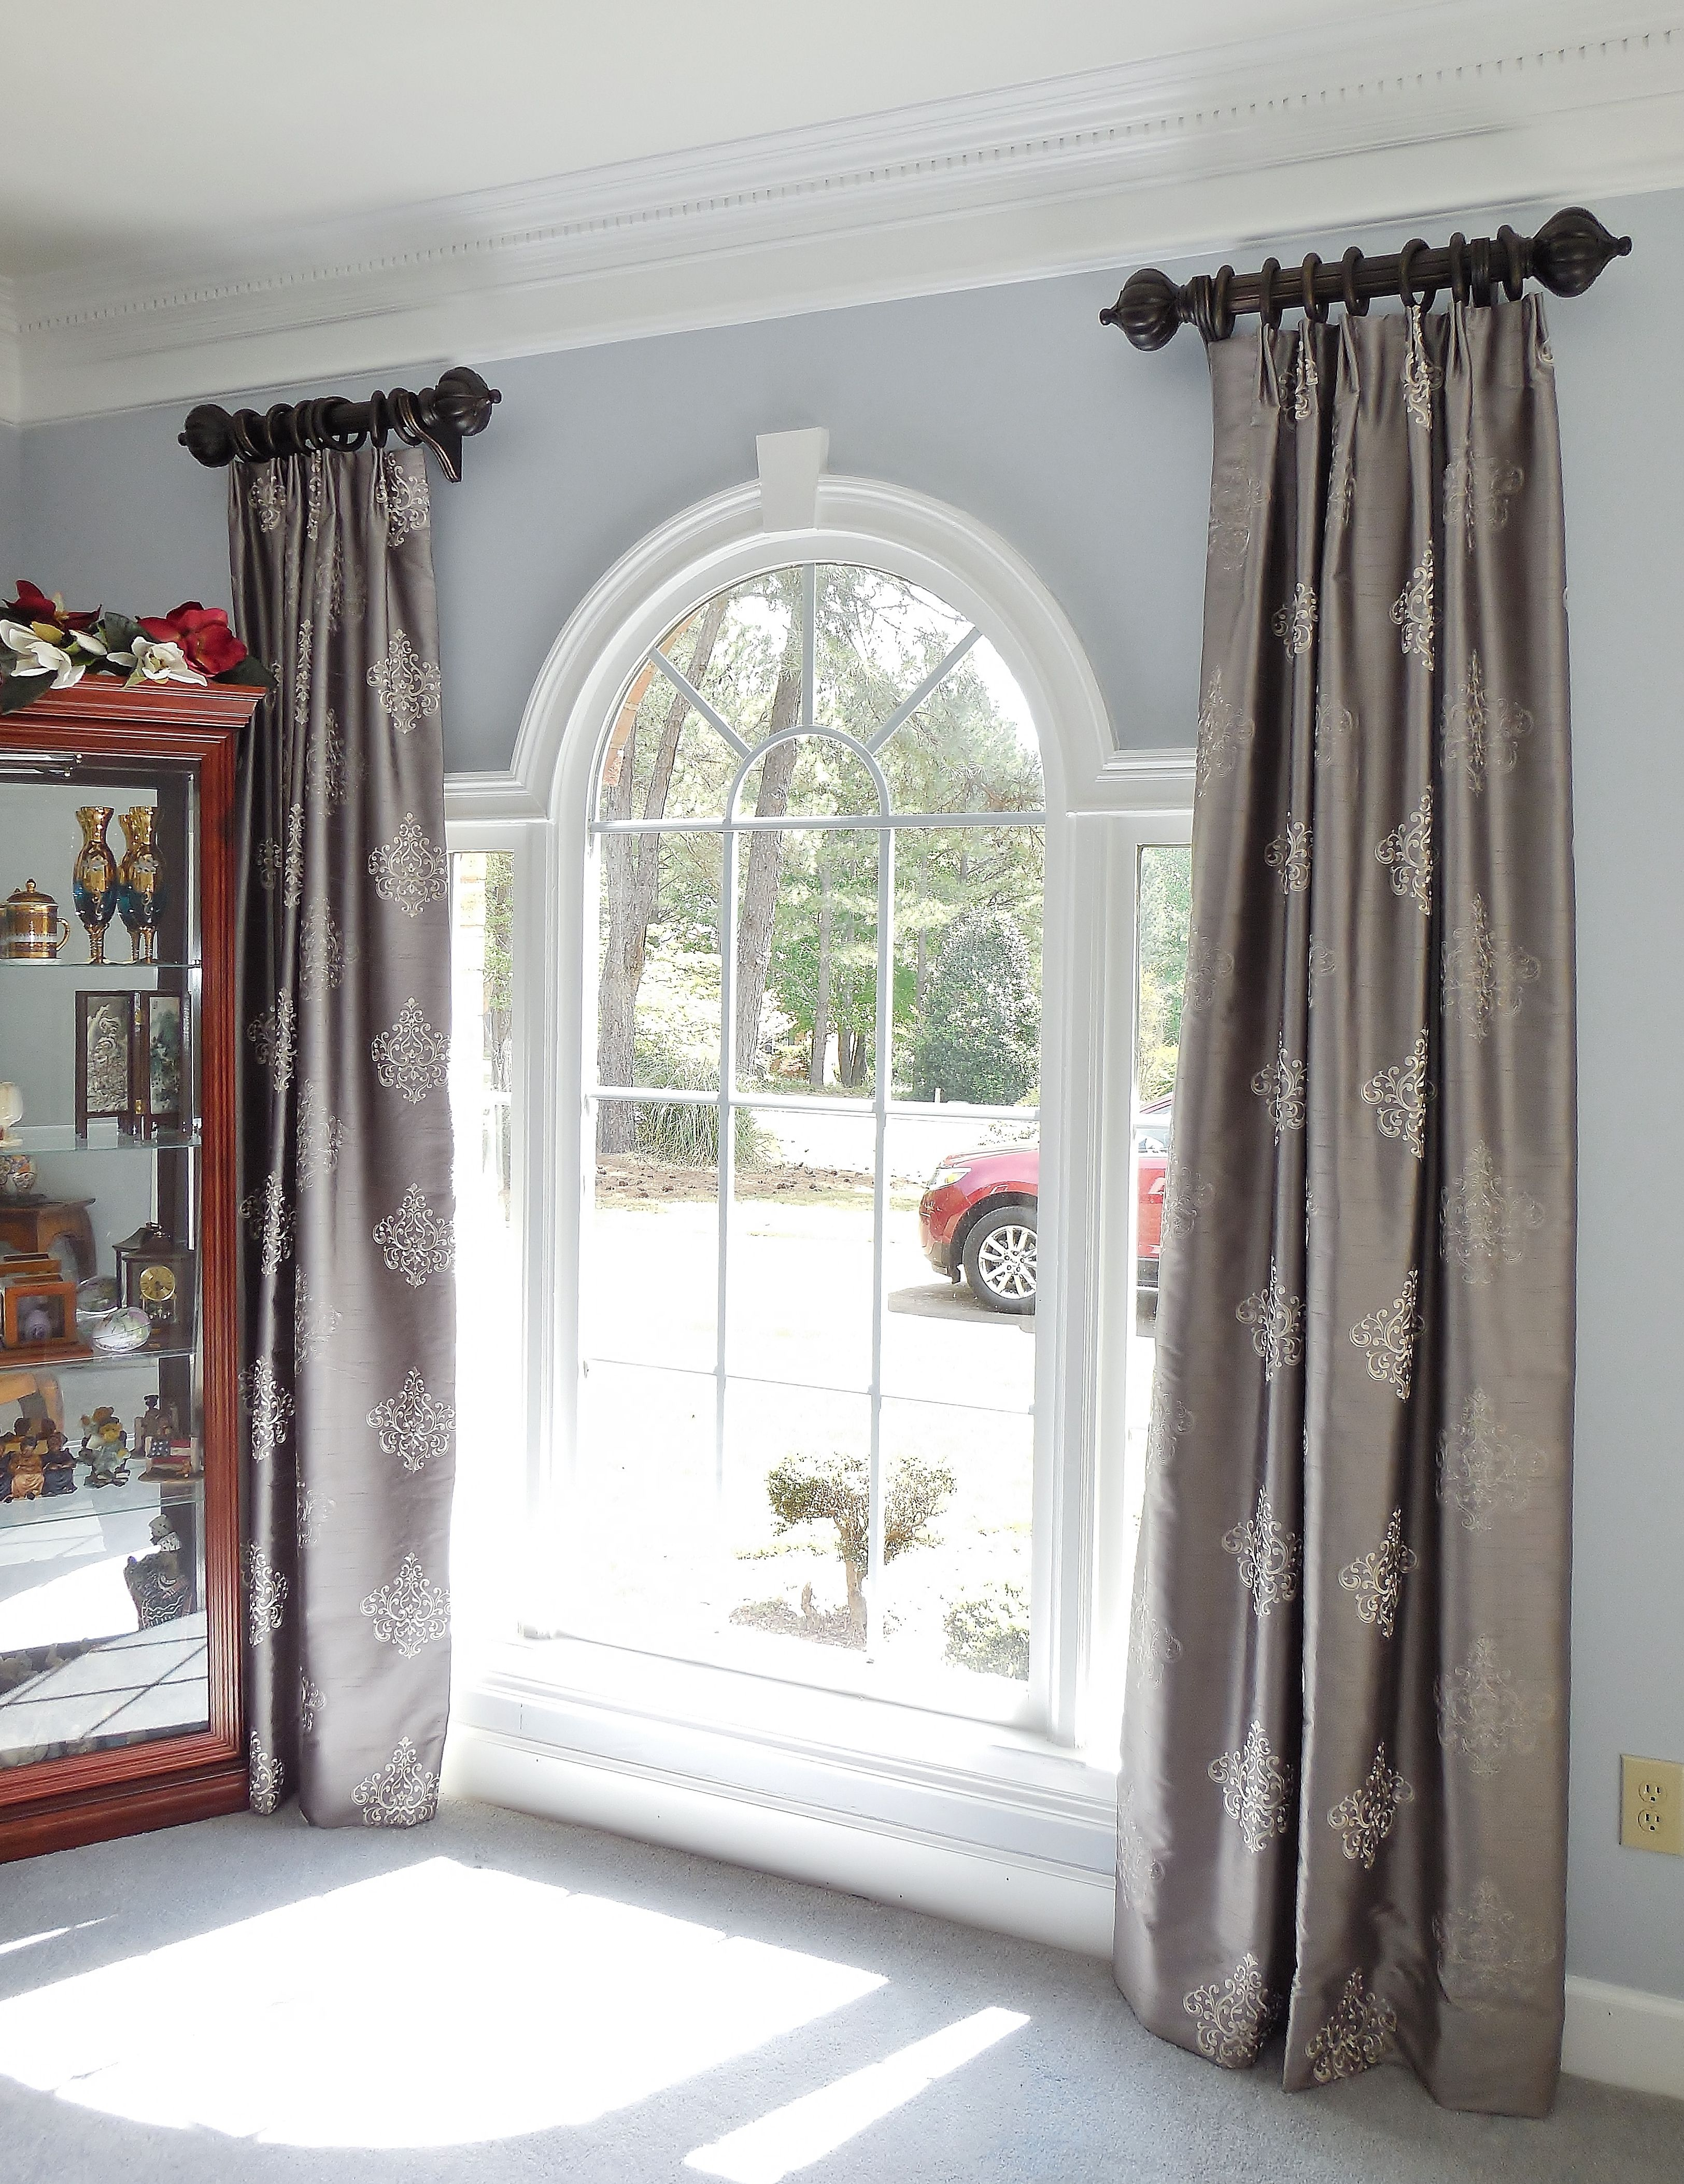 Ring Curtains On Short Rods Above Arched Windows Window